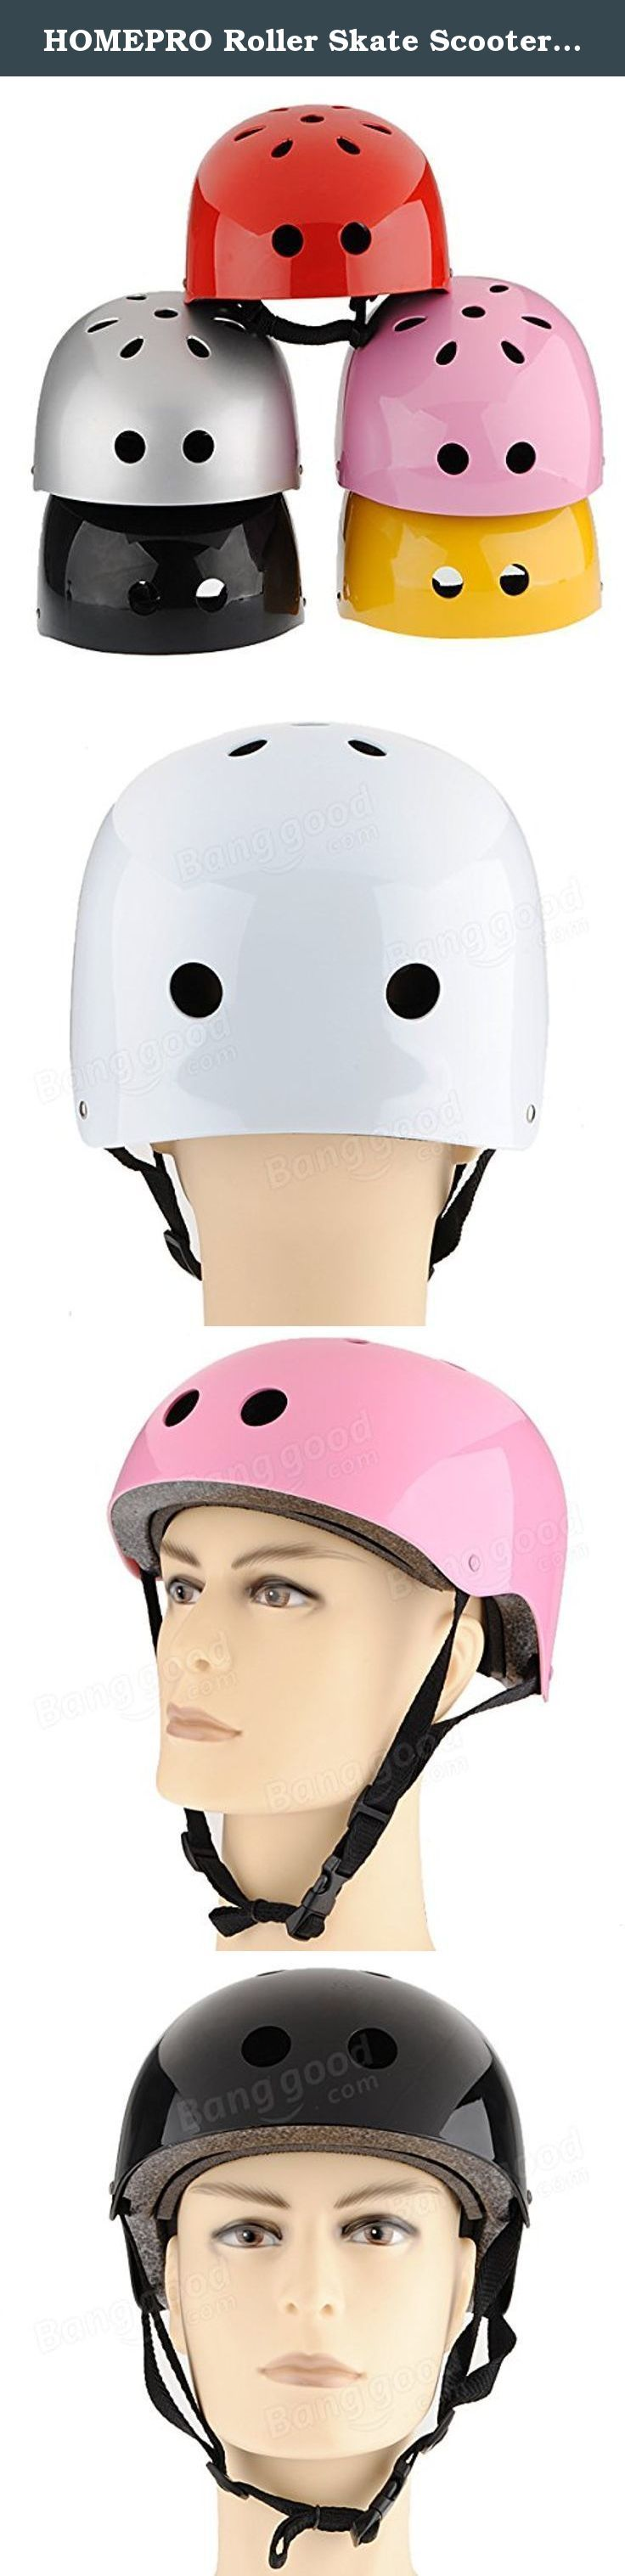 HOMEPRO Roller Skate Scooter Helmet Skateboard Skiing Cycling Helmet Size M ( Silver ). This list Size or Color : Silver Specifications: Type: Helmet Weight: 500g Outer Material: ABS Advanced Engineering Plastic (Plating) Mesochite Material: Black EPS (High-density Foam) Inner Material: High-density Foam Fabric (Soft and Comfortable) Size: M(fits for the people whose head size is under 58cm ) Color: Sliver, Black, White, Yellow, Pink Features: It is good for Pedal cyclist, skating, and...